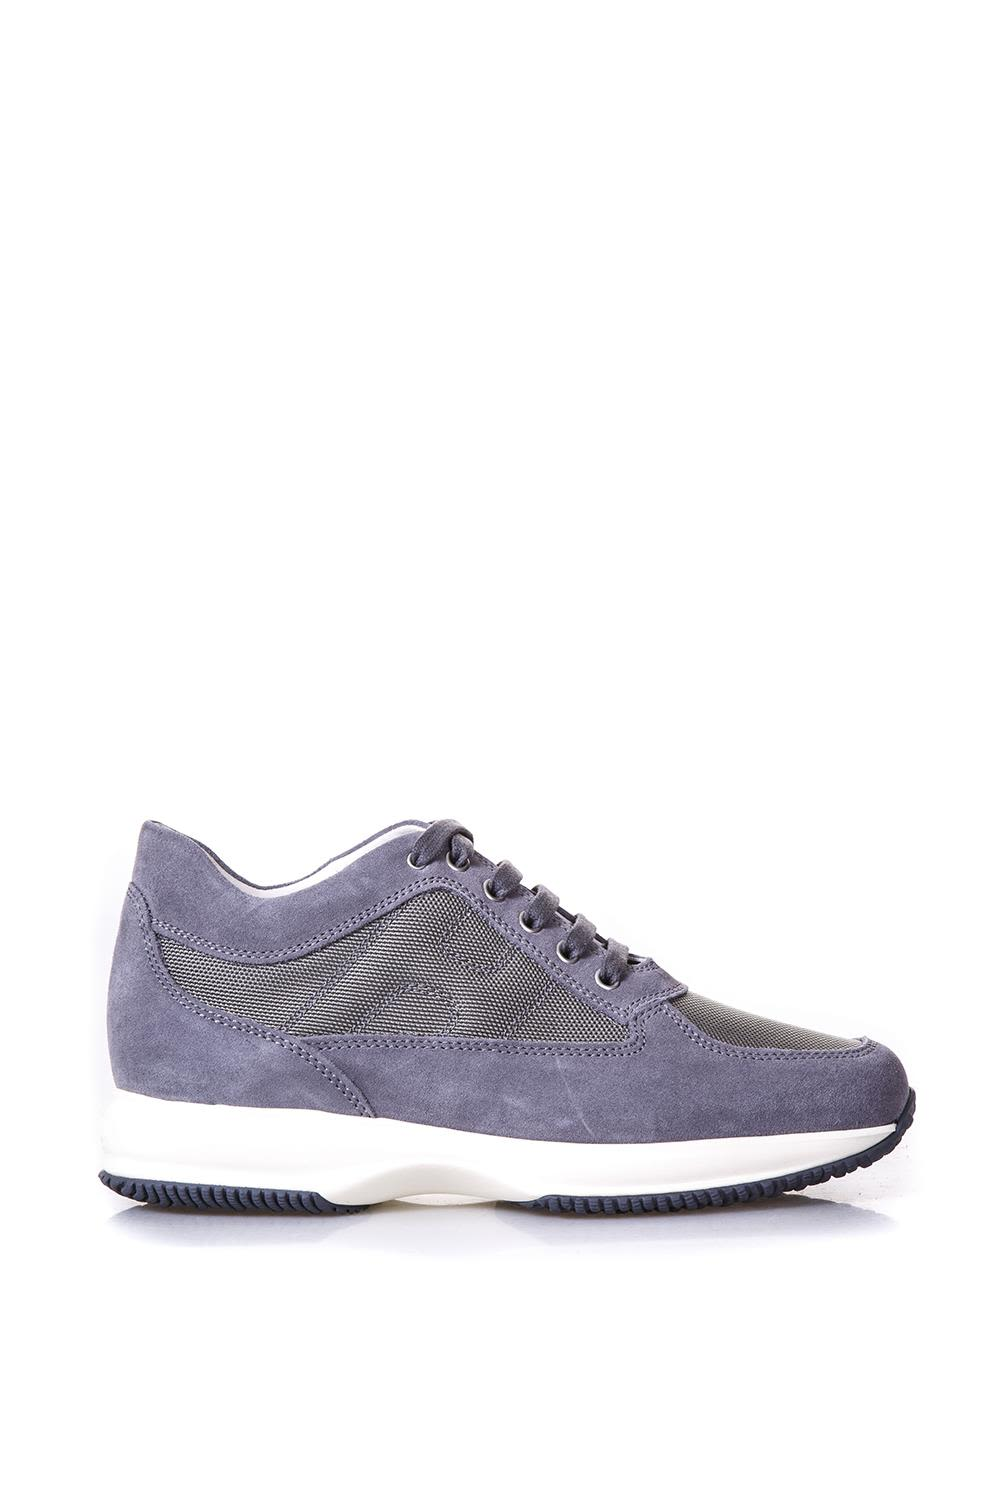 Hogan Interactive Gray Suede & Nylon Sneakers